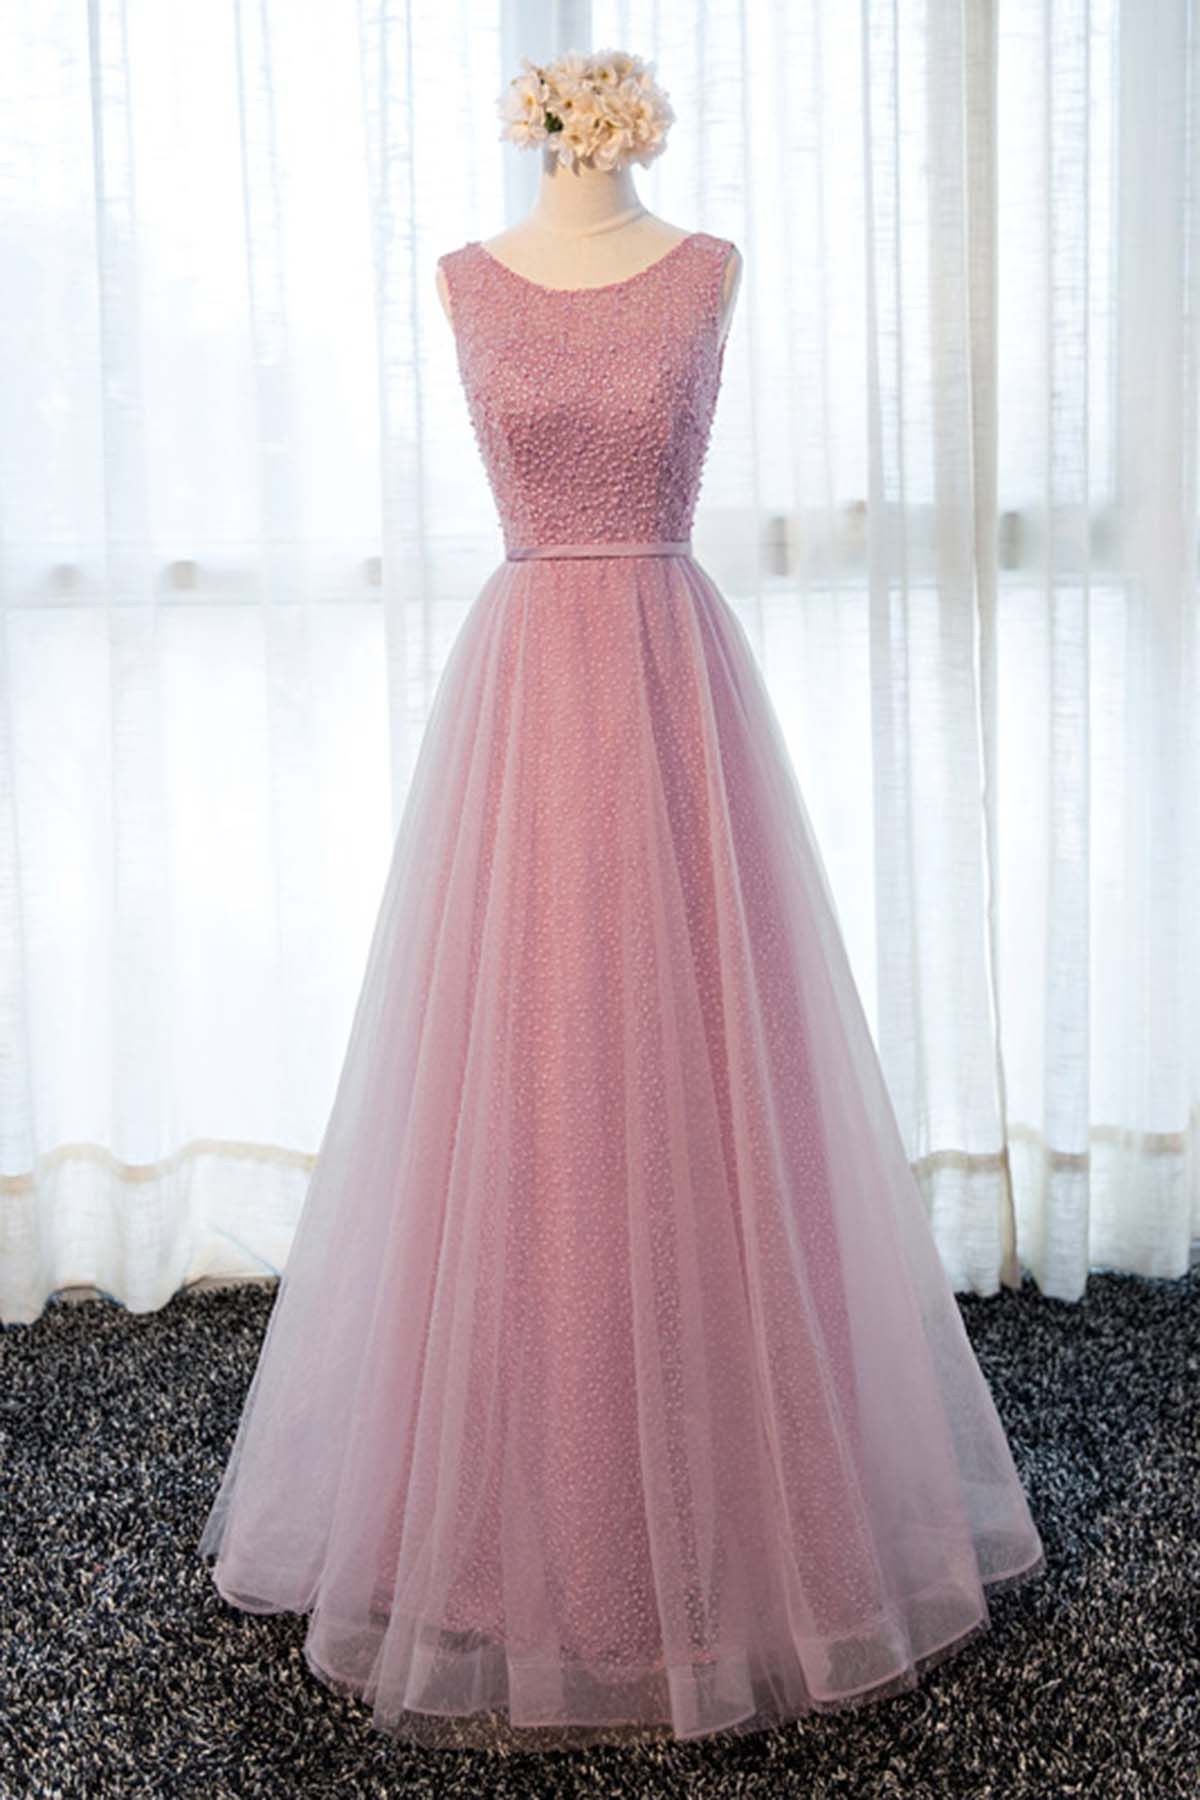 Pink Tulle Long Lace Halter Sweet 16 Prom Dress Long Spring Party Dresses From Girlsprom In 2019 Dresses Tulle Bridesmaid Dress Bridesmaid Dresses [ 1800 x 1200 Pixel ]